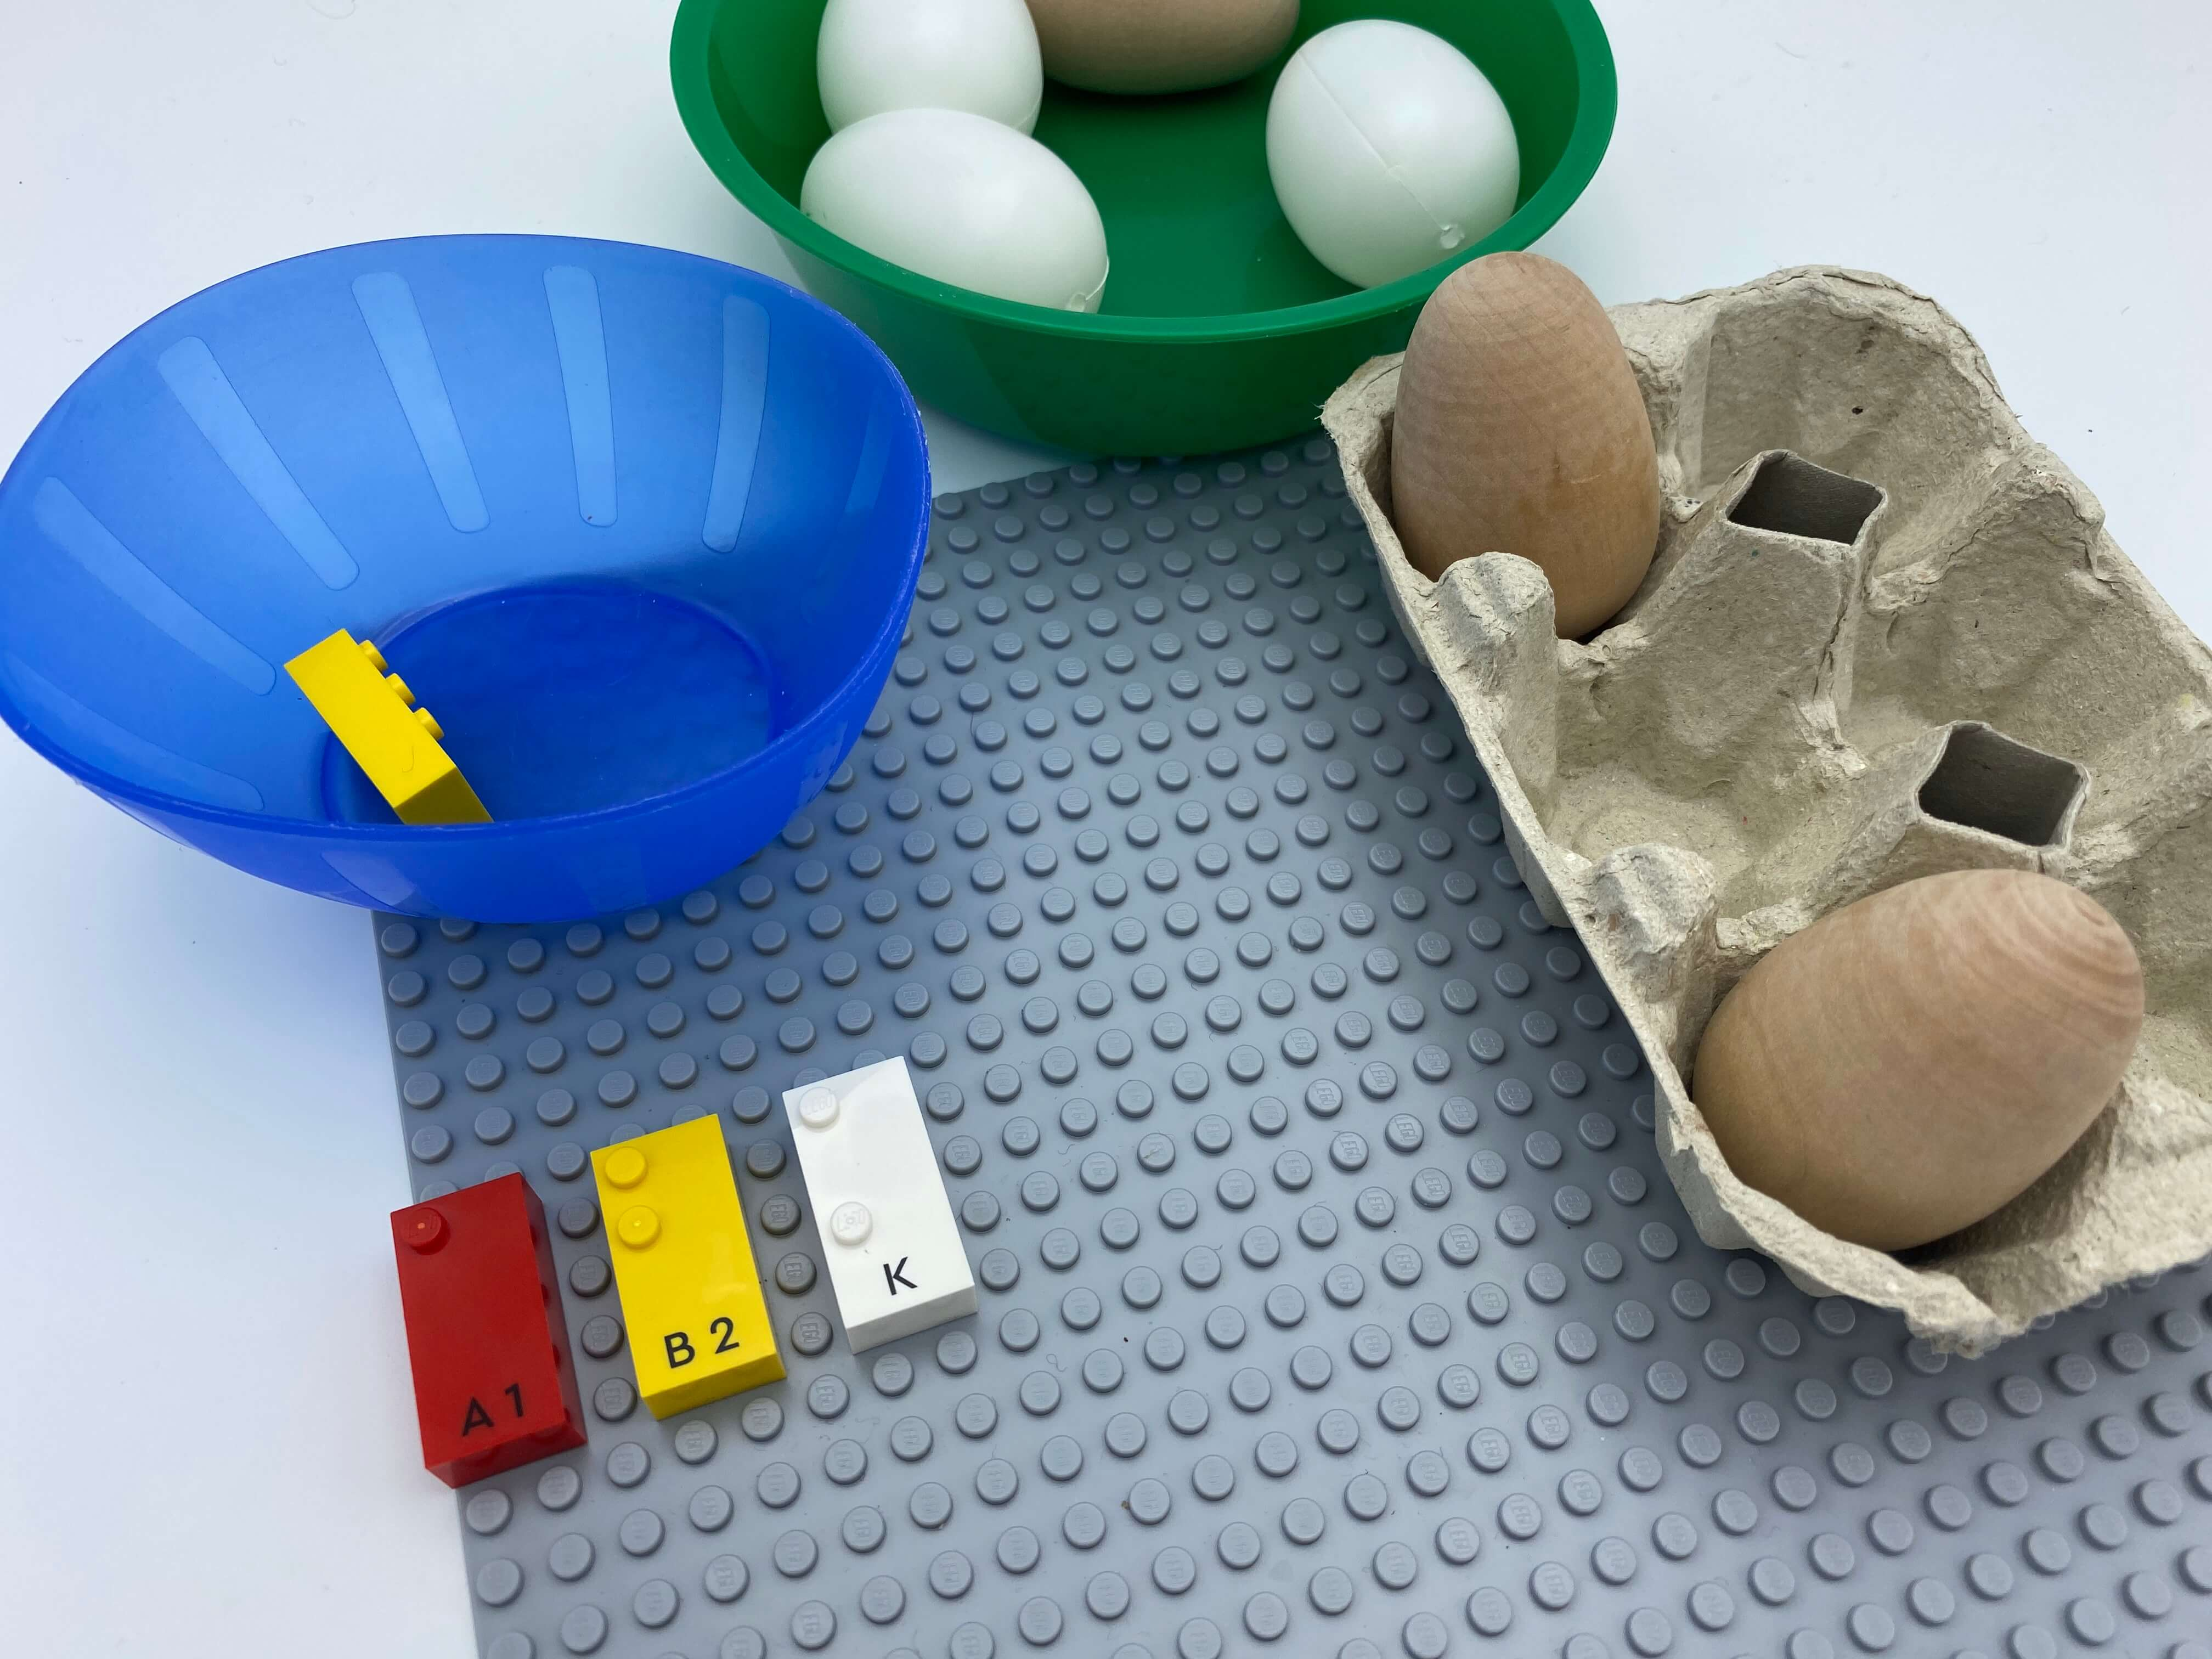 Letter brick k on the base plate, egg carton with 1 egg in dot 1 and in dot 3.